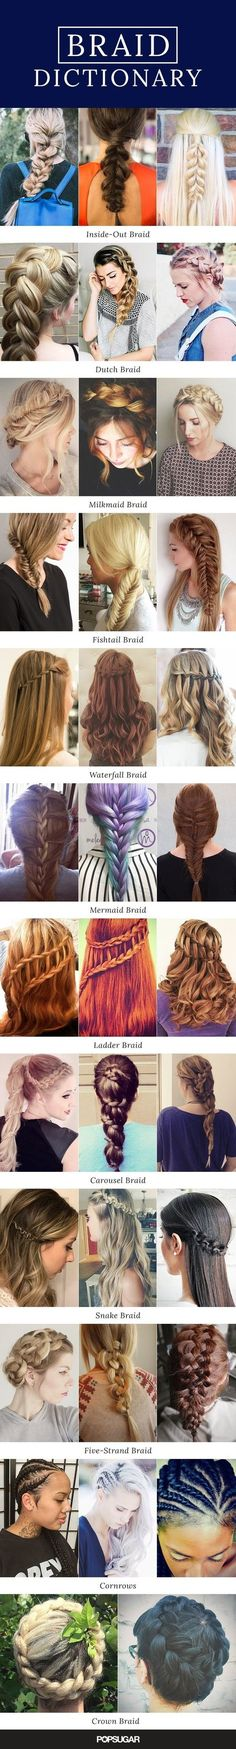 Braid dictionary  Fun and easy ways to find cute go to hairstyles